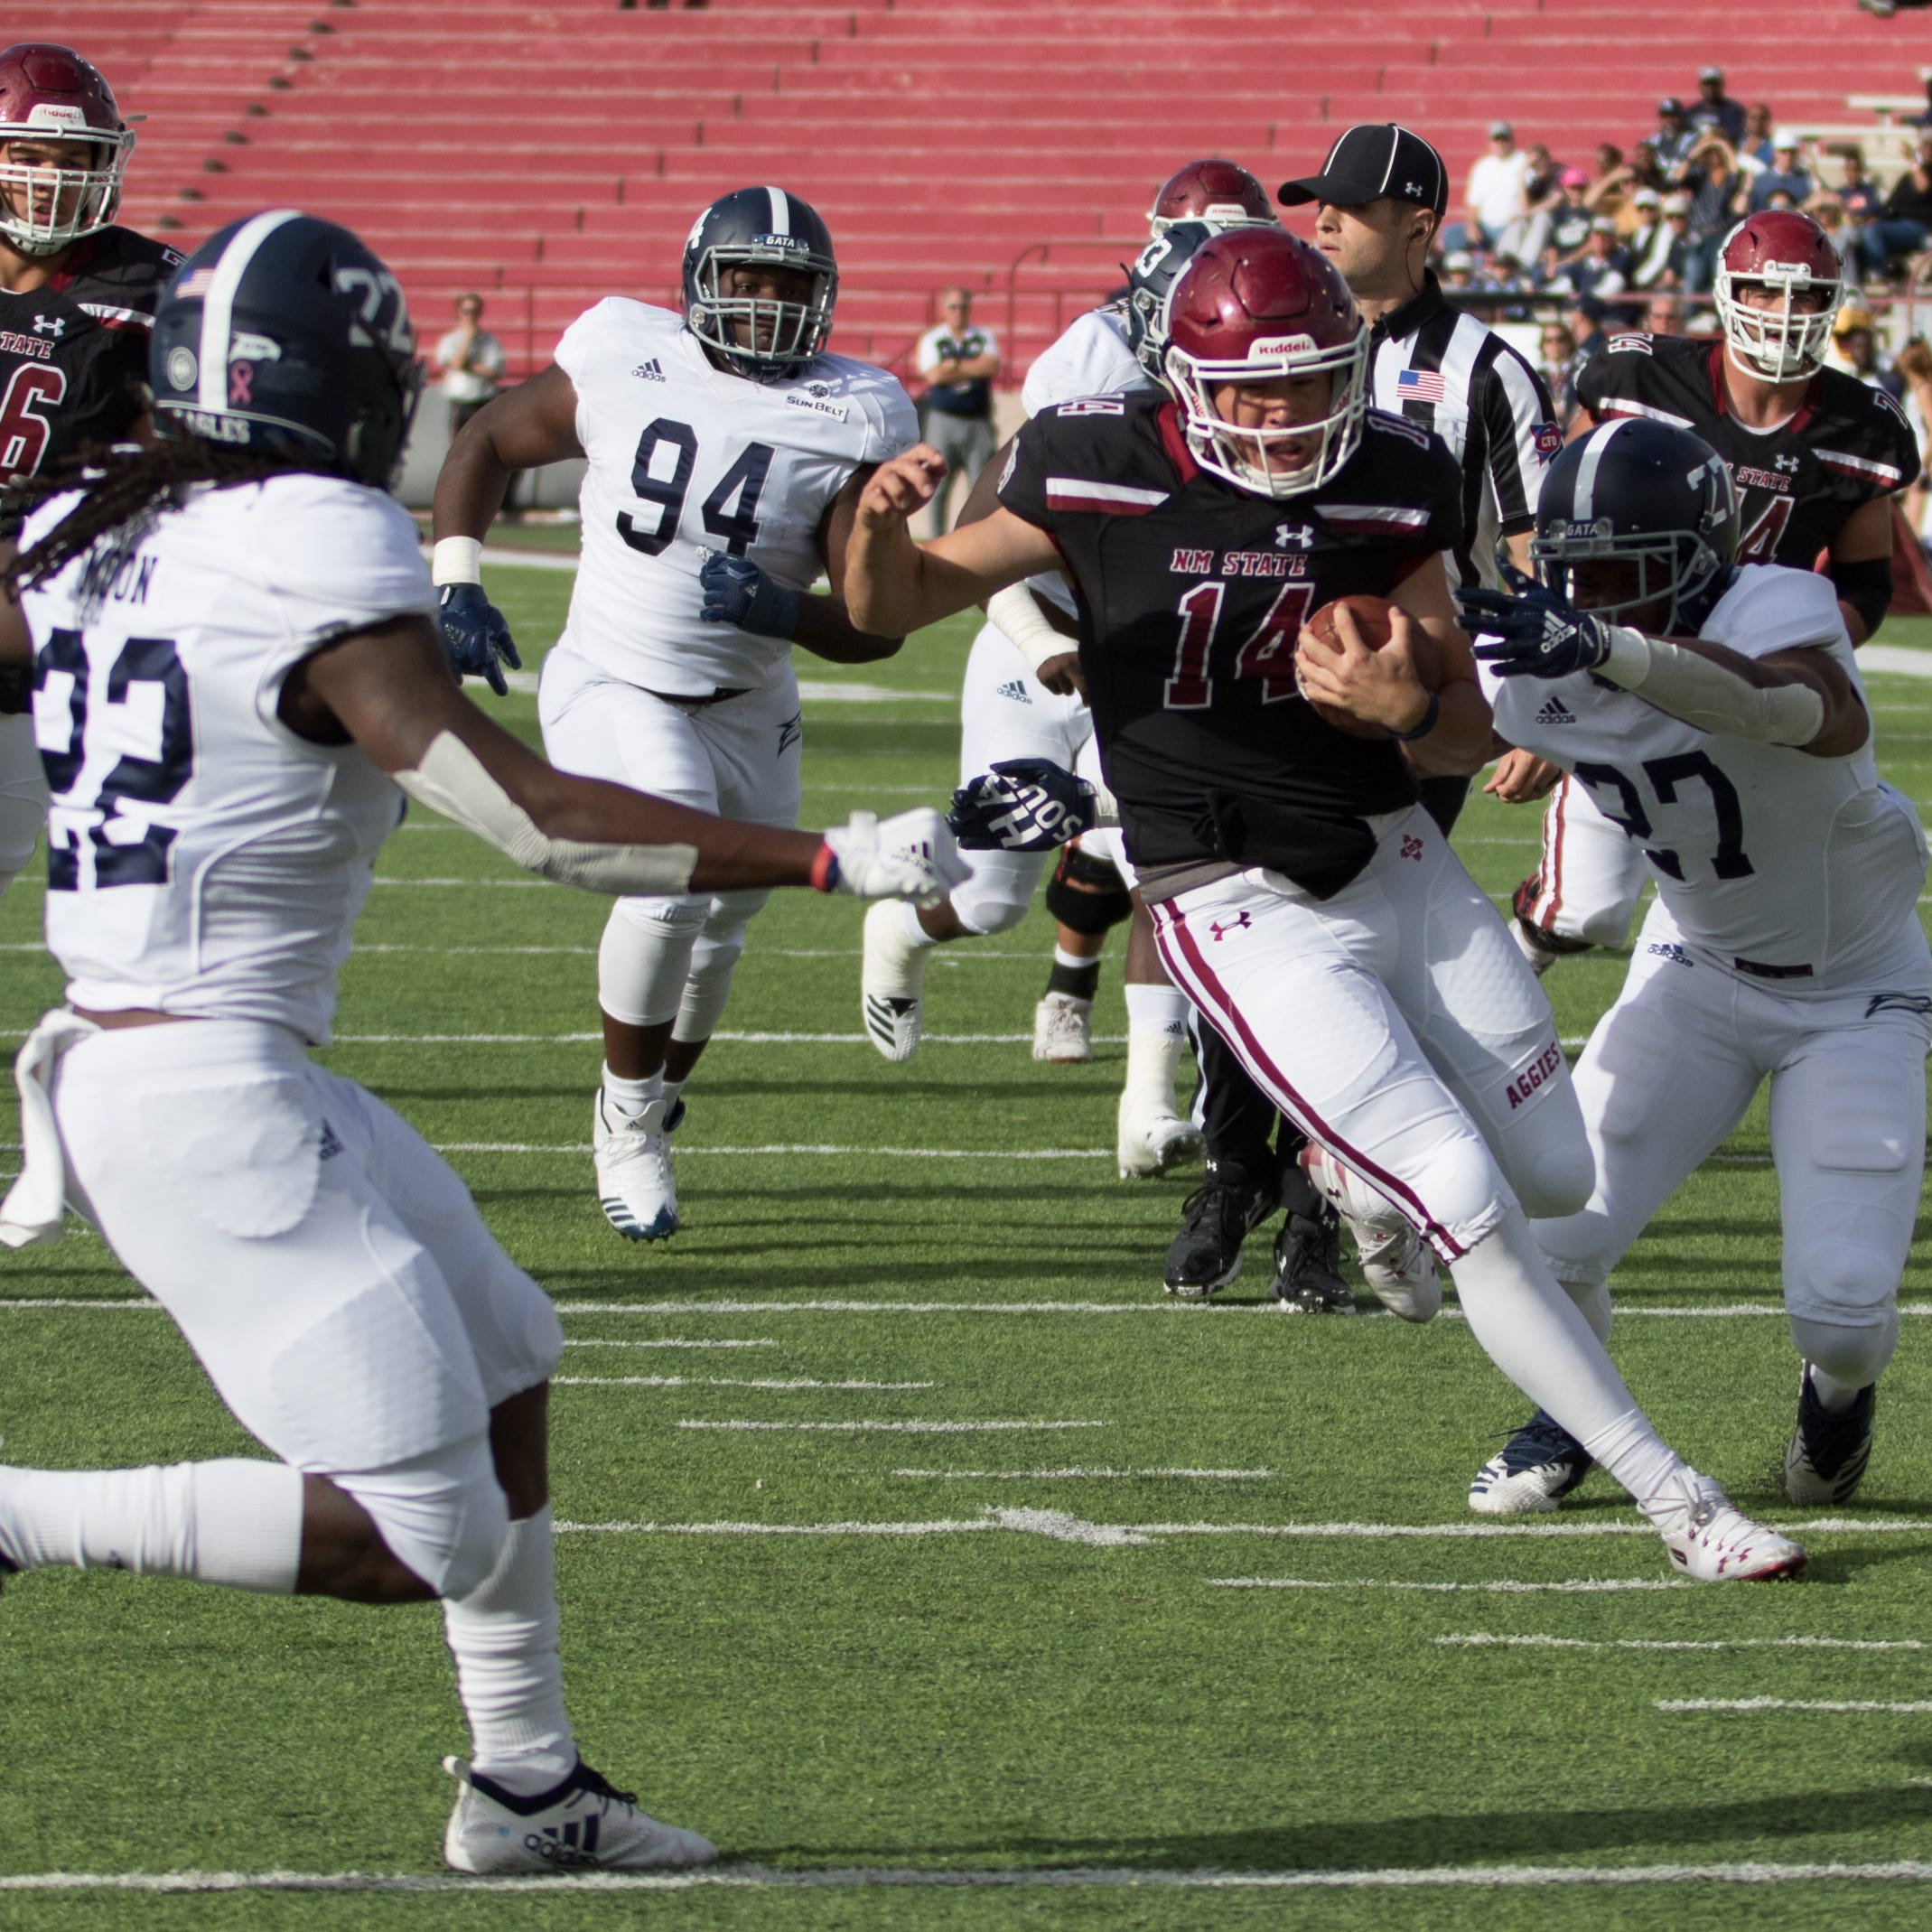 Georgia Southern reaches bowl eligibility with win at New Mexico State